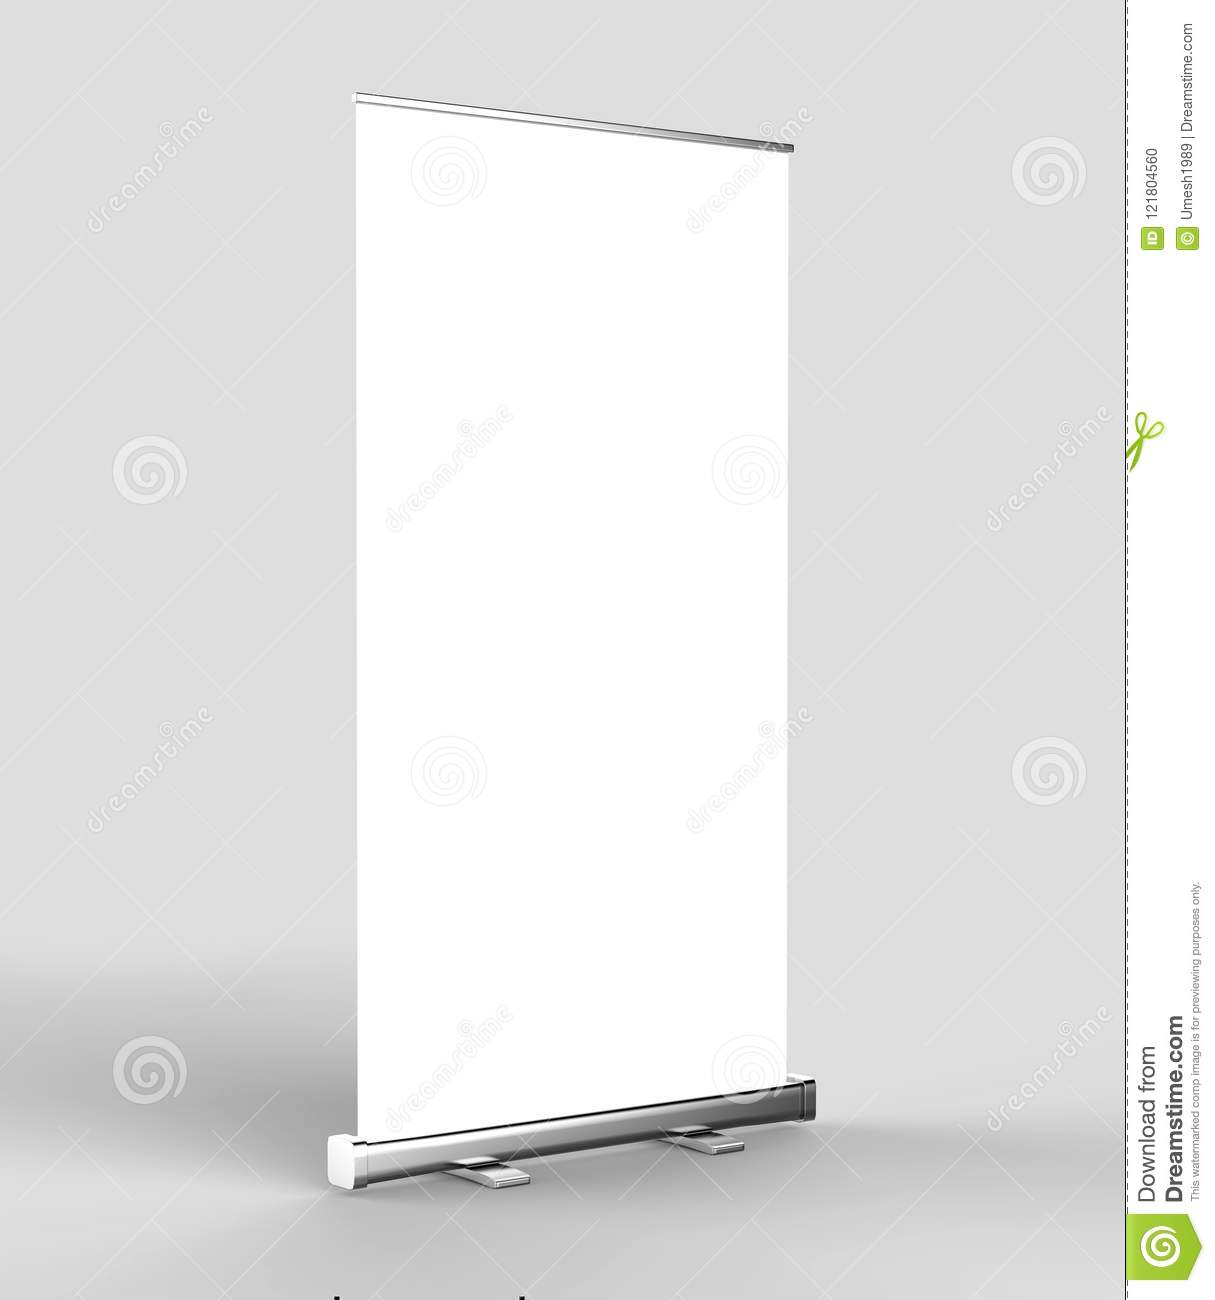 White blank empty high resolution business roll up and standee white blank empty high resolution business roll up and standee banner display mock up template for your design presentation accmission Image collections